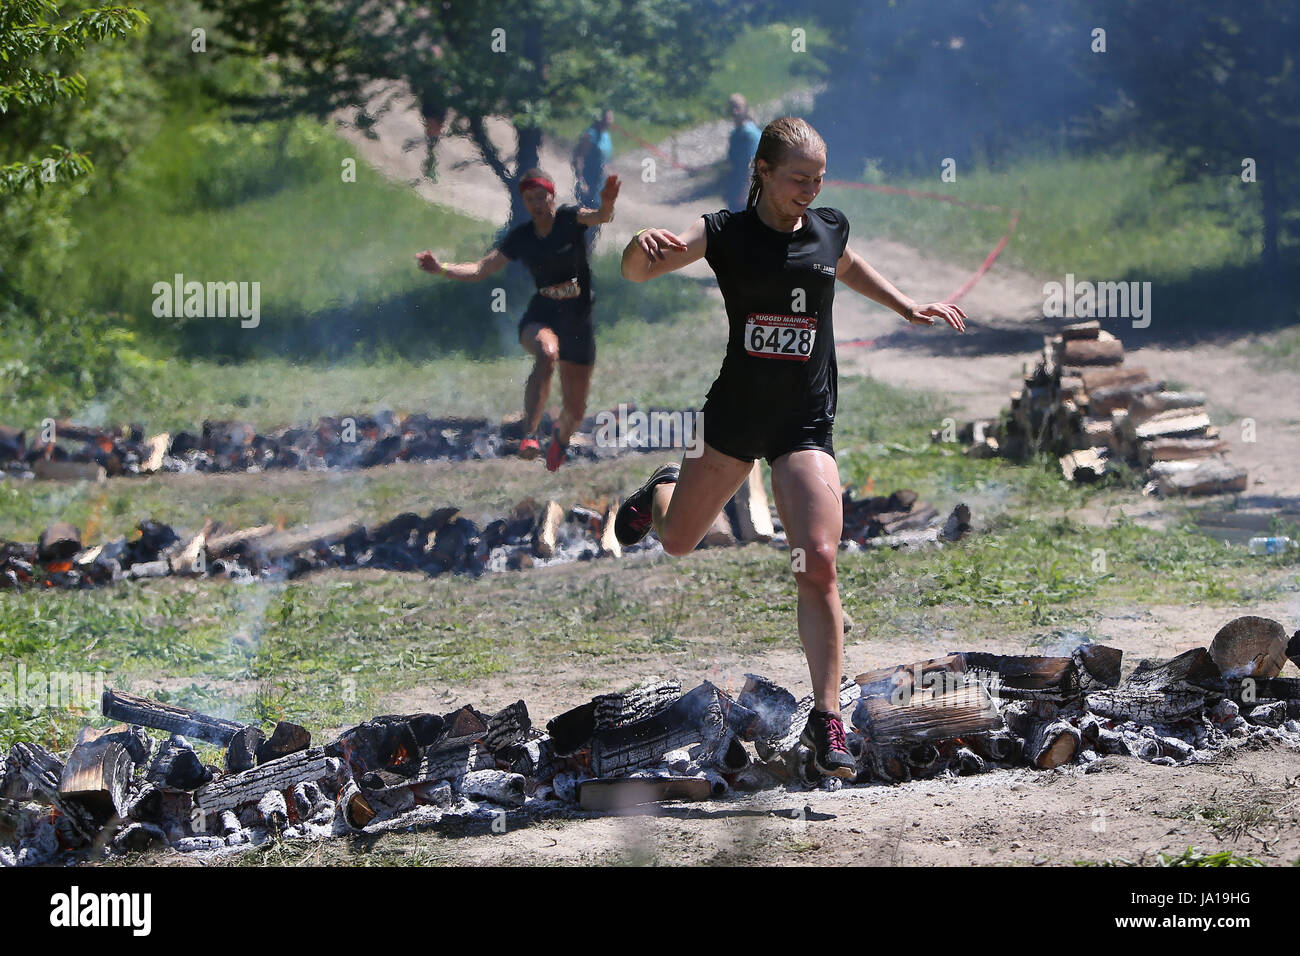 Kitchener, Ontario, Canada. 3rd June, 2017. Participants ran a 5 kilometer course today with obstacles in its way. - Stock Image